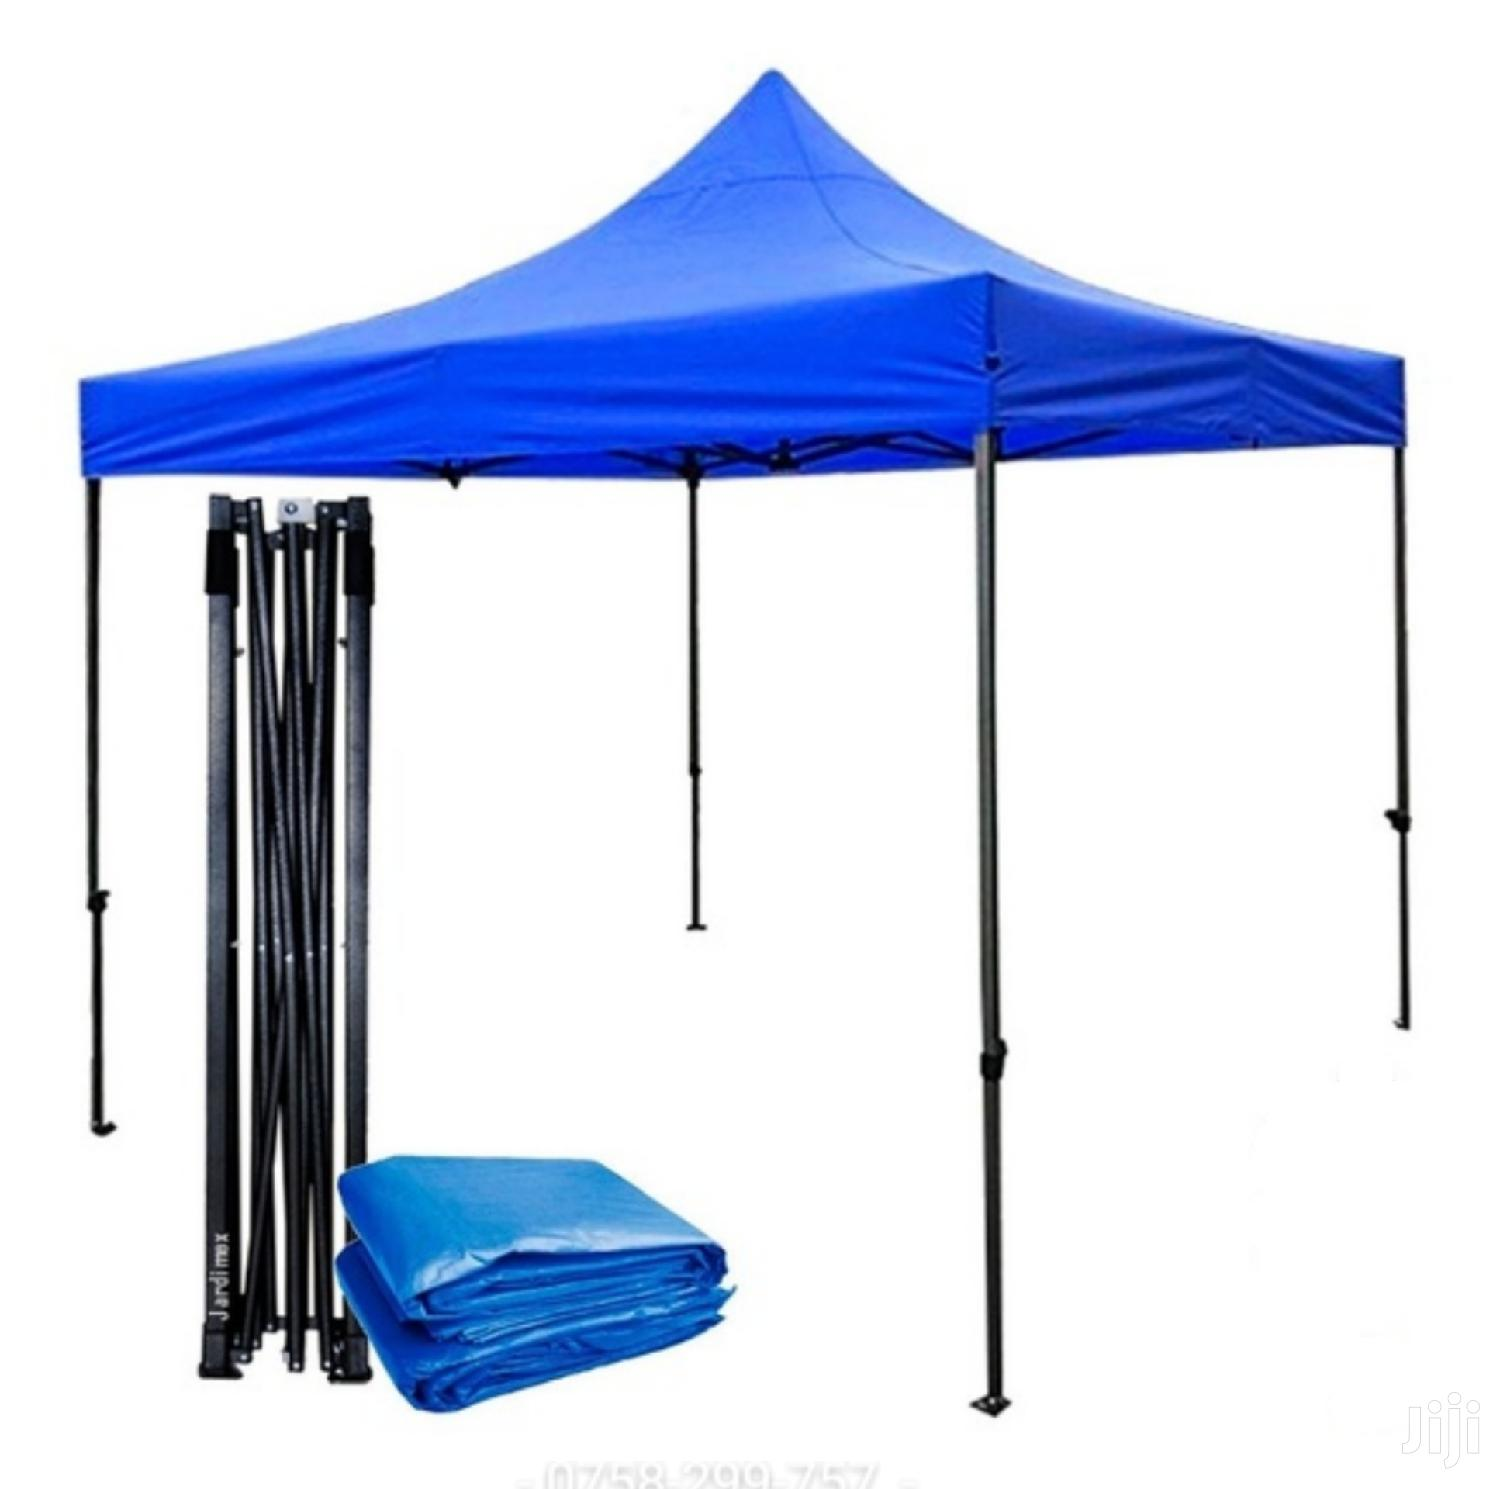 2x2 Meter Exhibition /Show Tent (Blue Only)